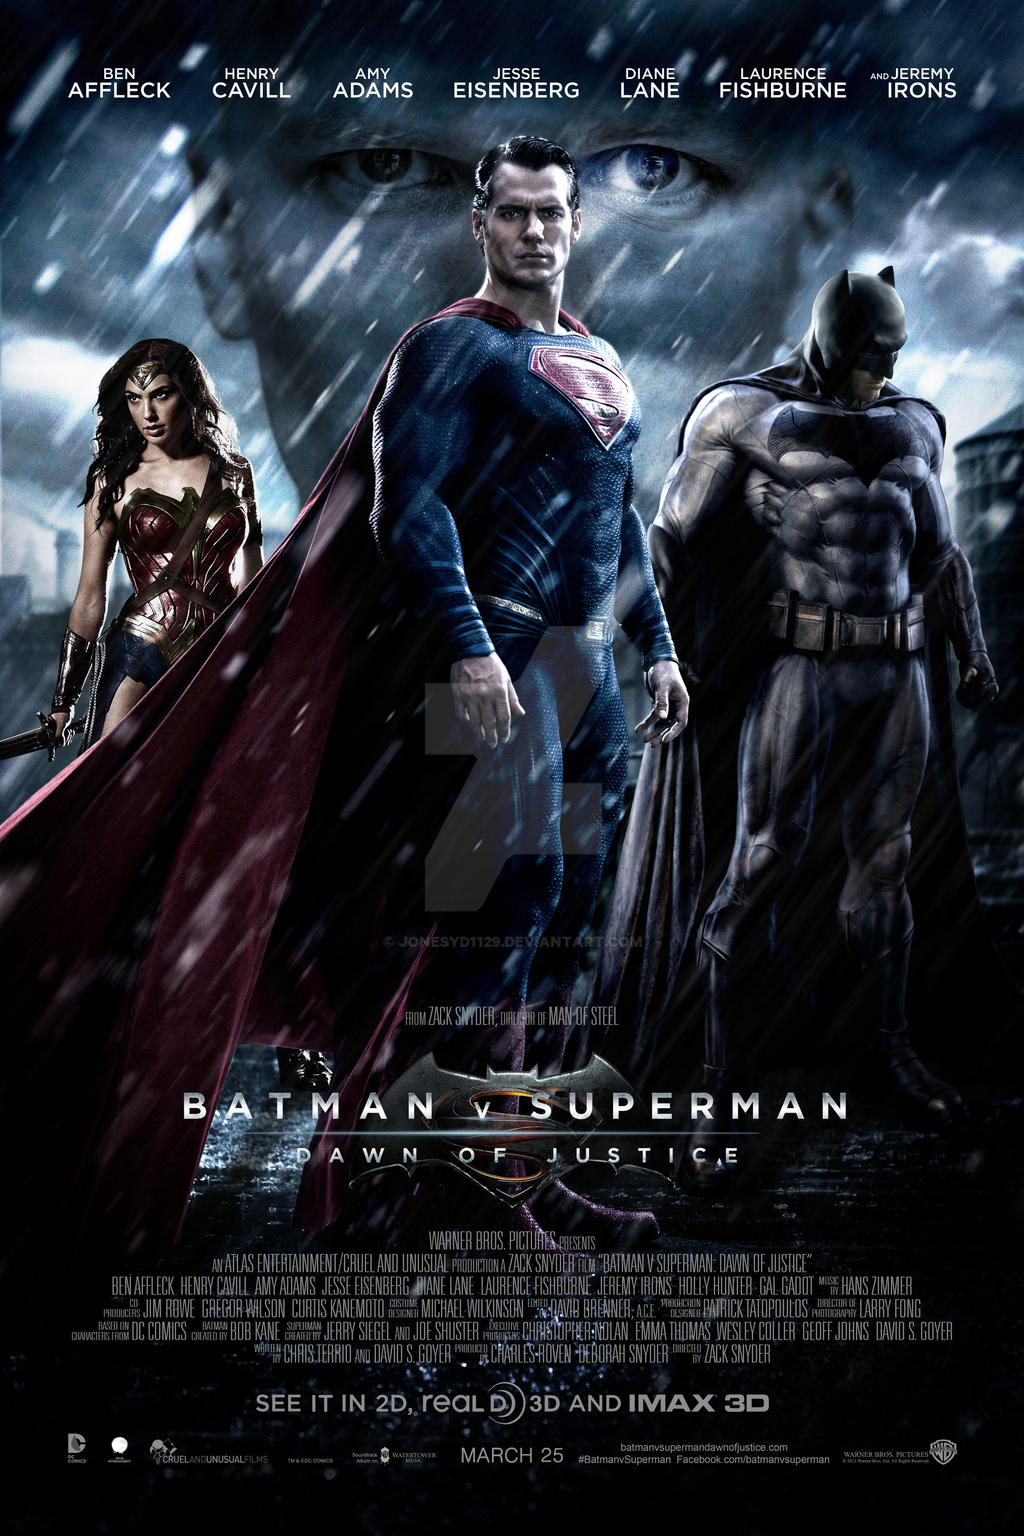 póster de la película Batman vs Superman